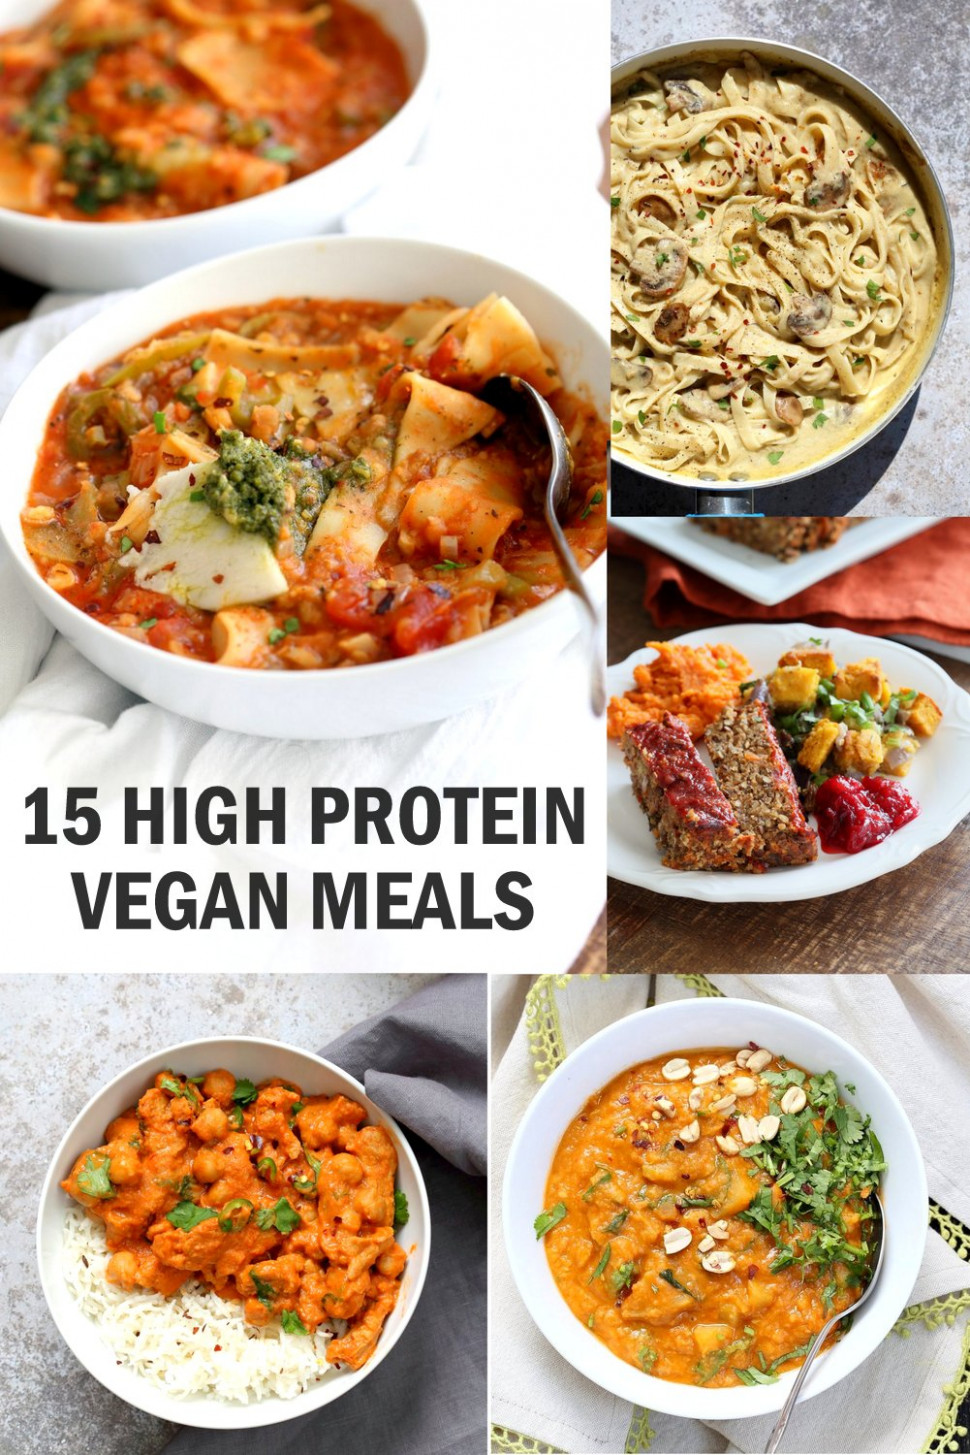 14 High Protein Vegan Meals - Vegan Richa - indian recipes dinner vegetarian